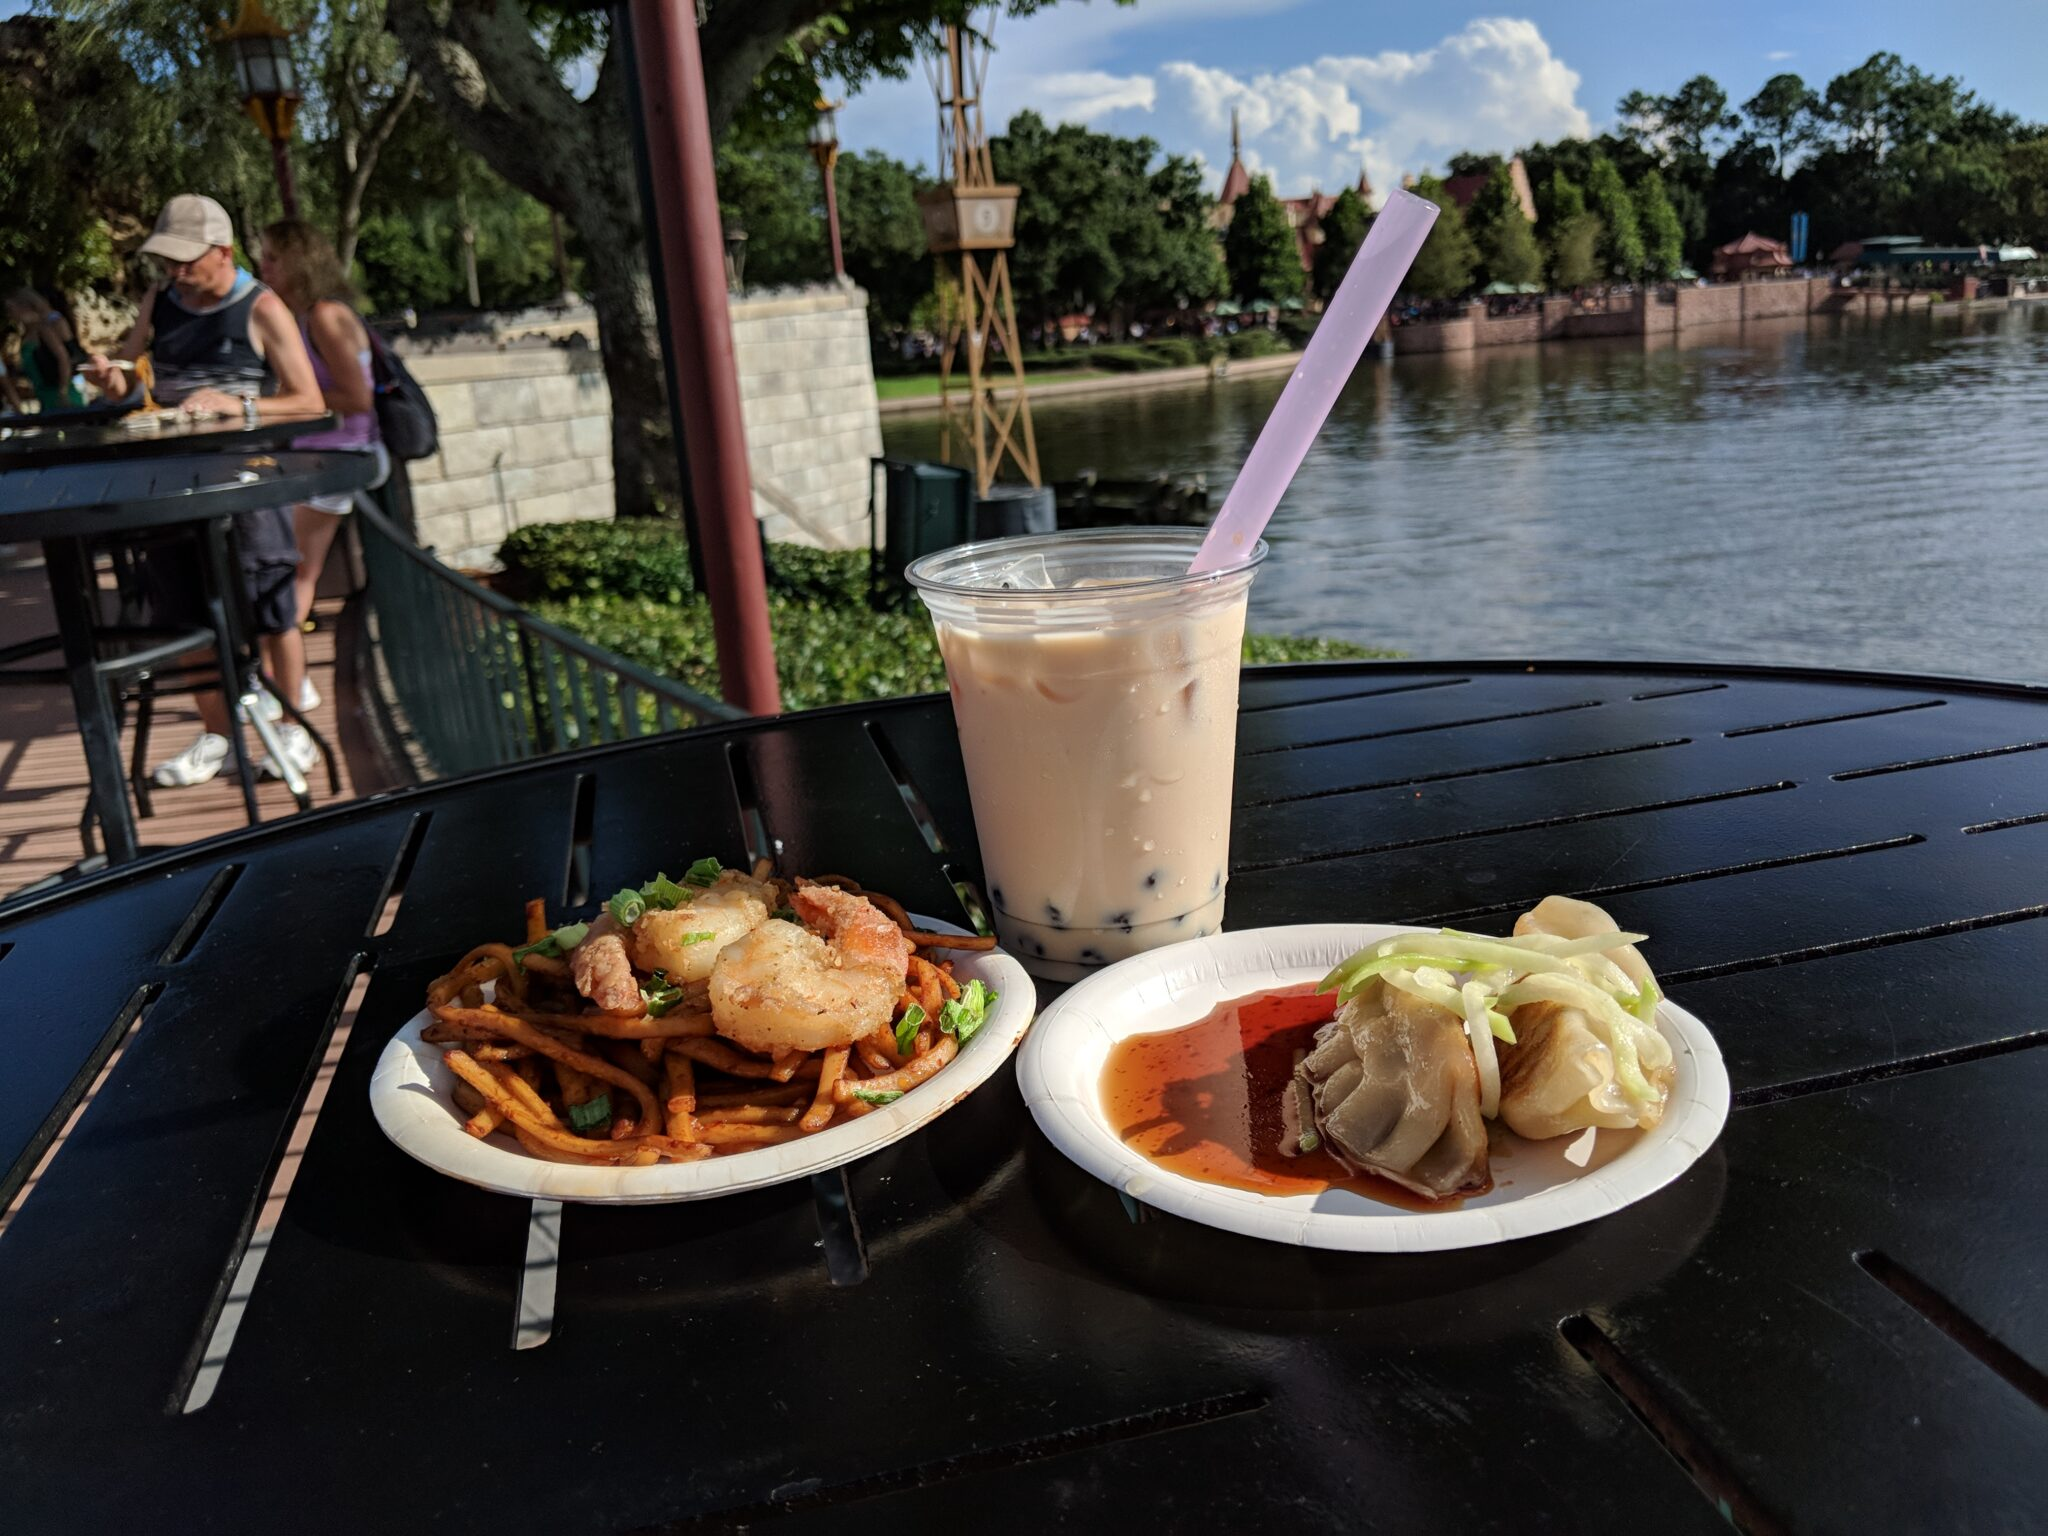 Learn how to try all 3 of these treats at Epcot Food & Wine on a budget.